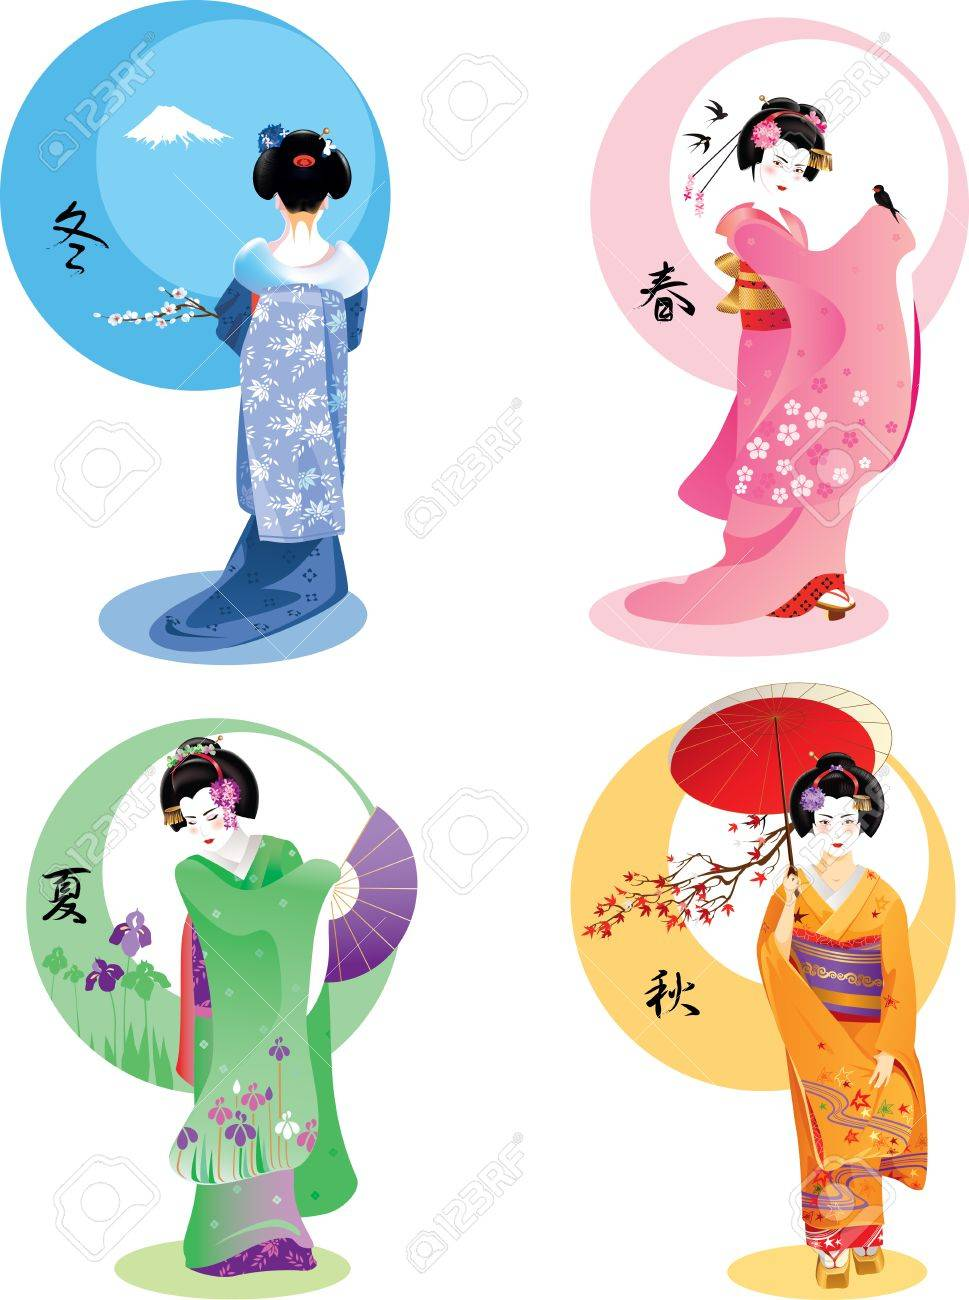 Vector illustration of young Japanese woman in traditional clothes as season symbol. - 34446244